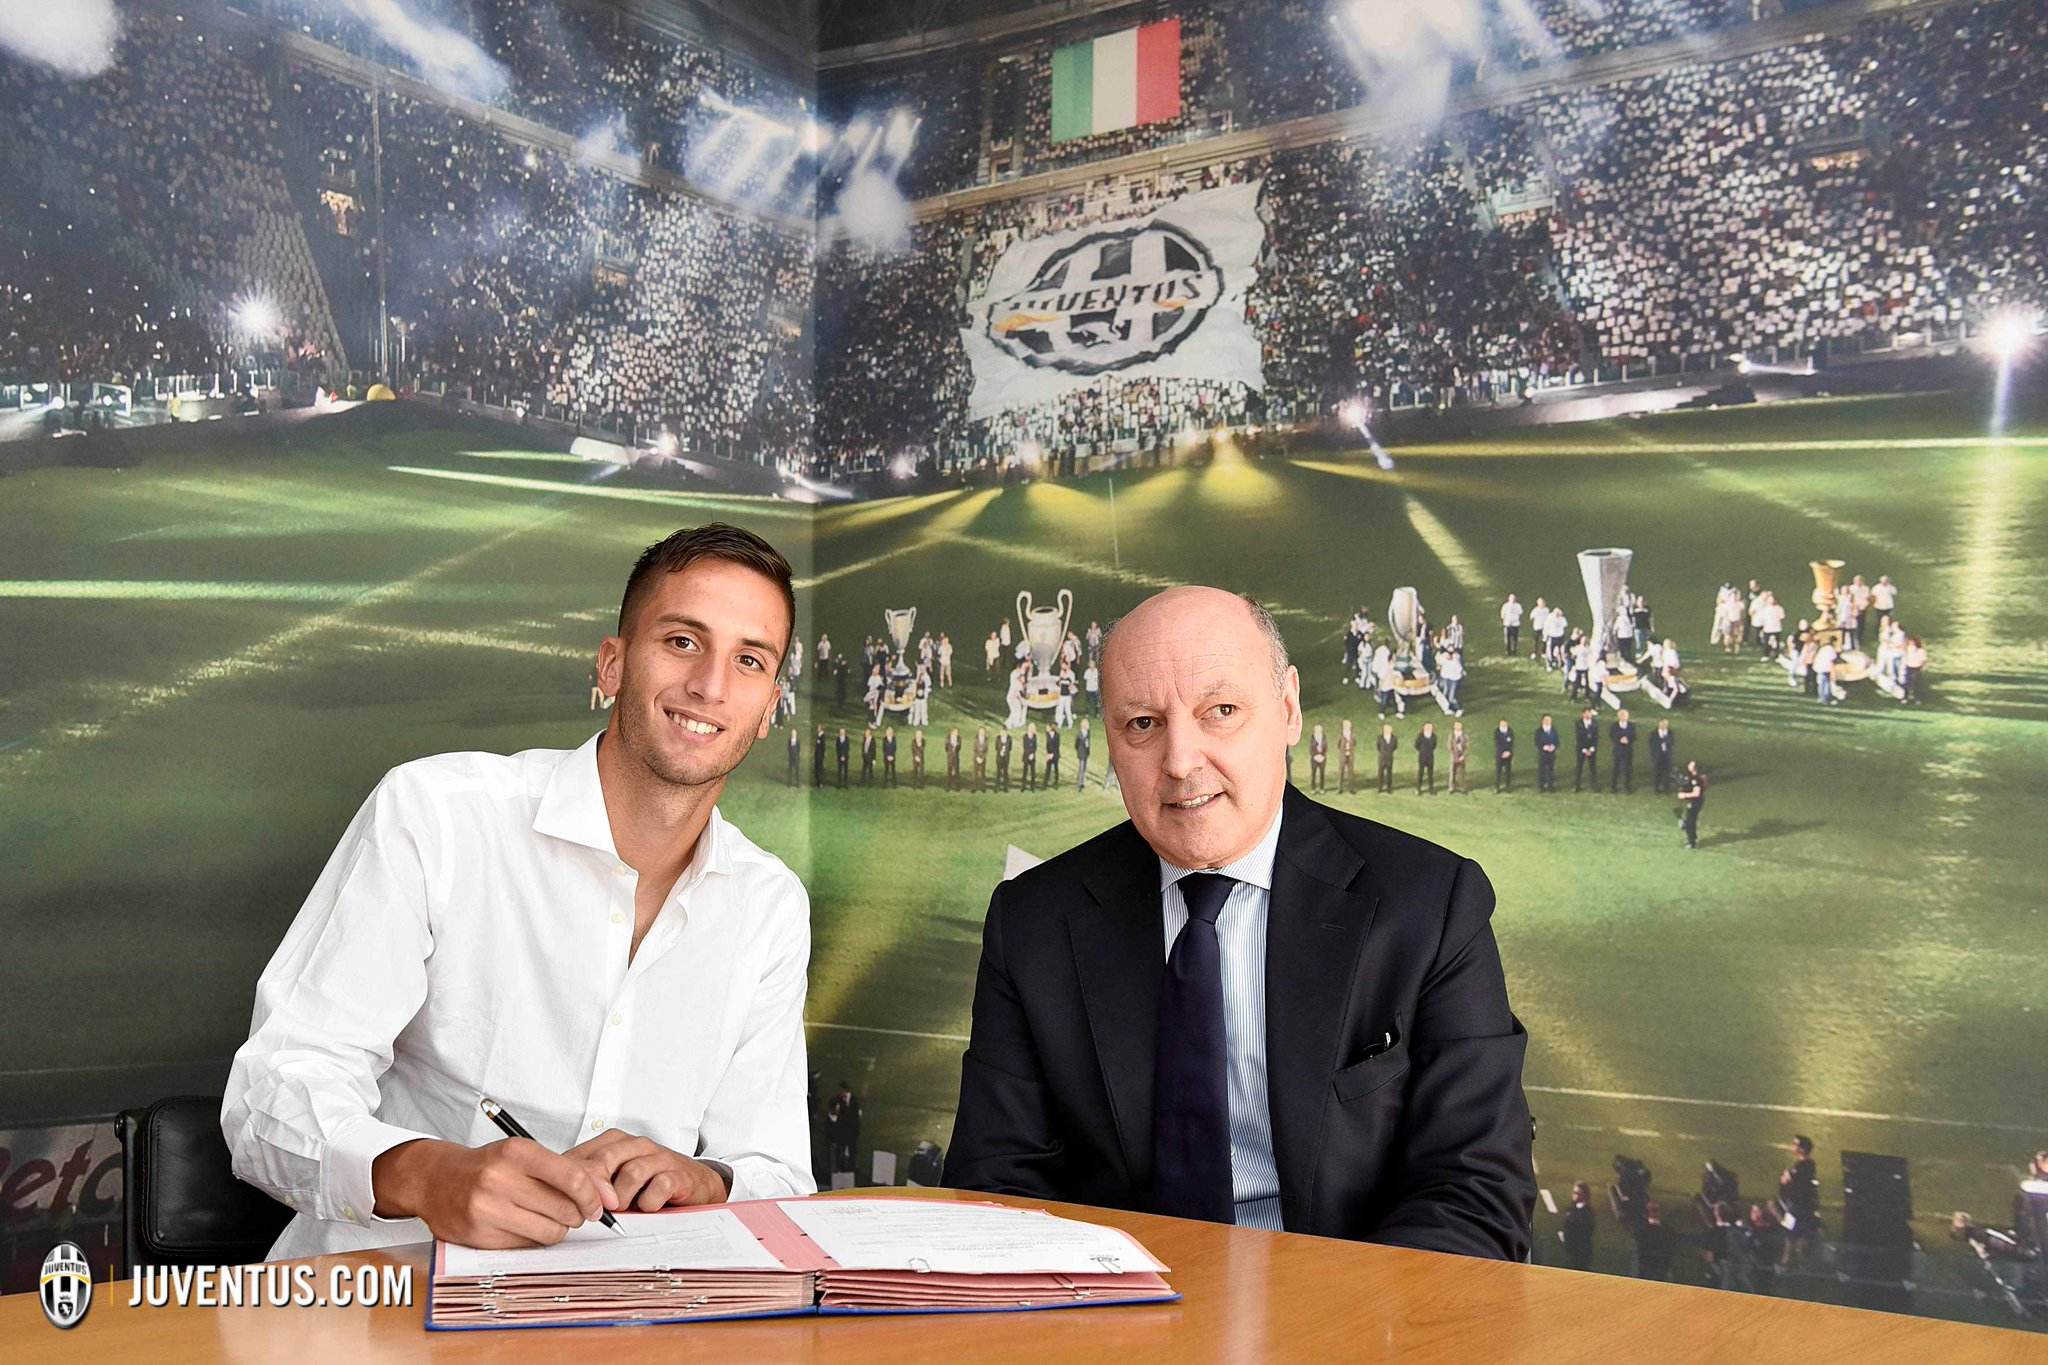 UFFICIALE: Rodrigo #Bentancur è bianconero! https://t.co/J7o1g4Ixlu https://t.co/ym5y4HshDW